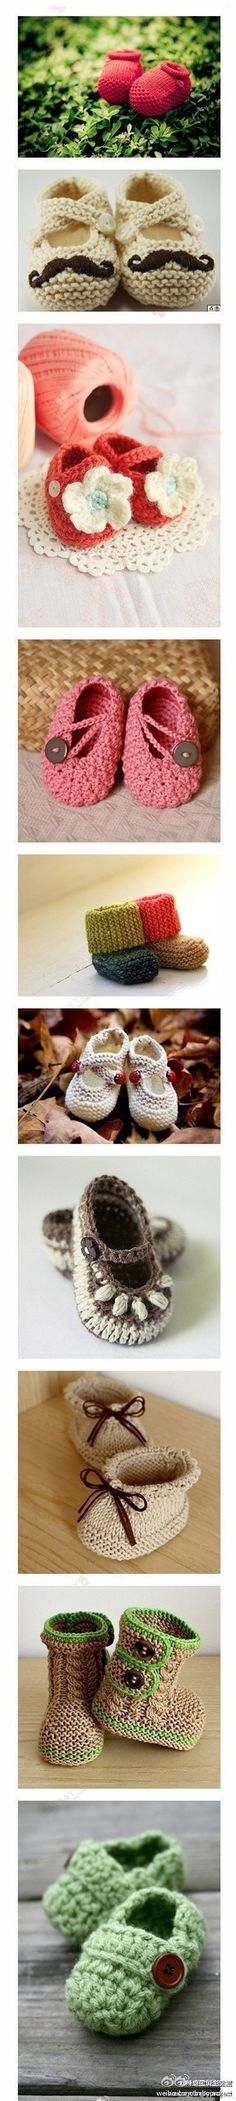 lovely crotchet baby shoes